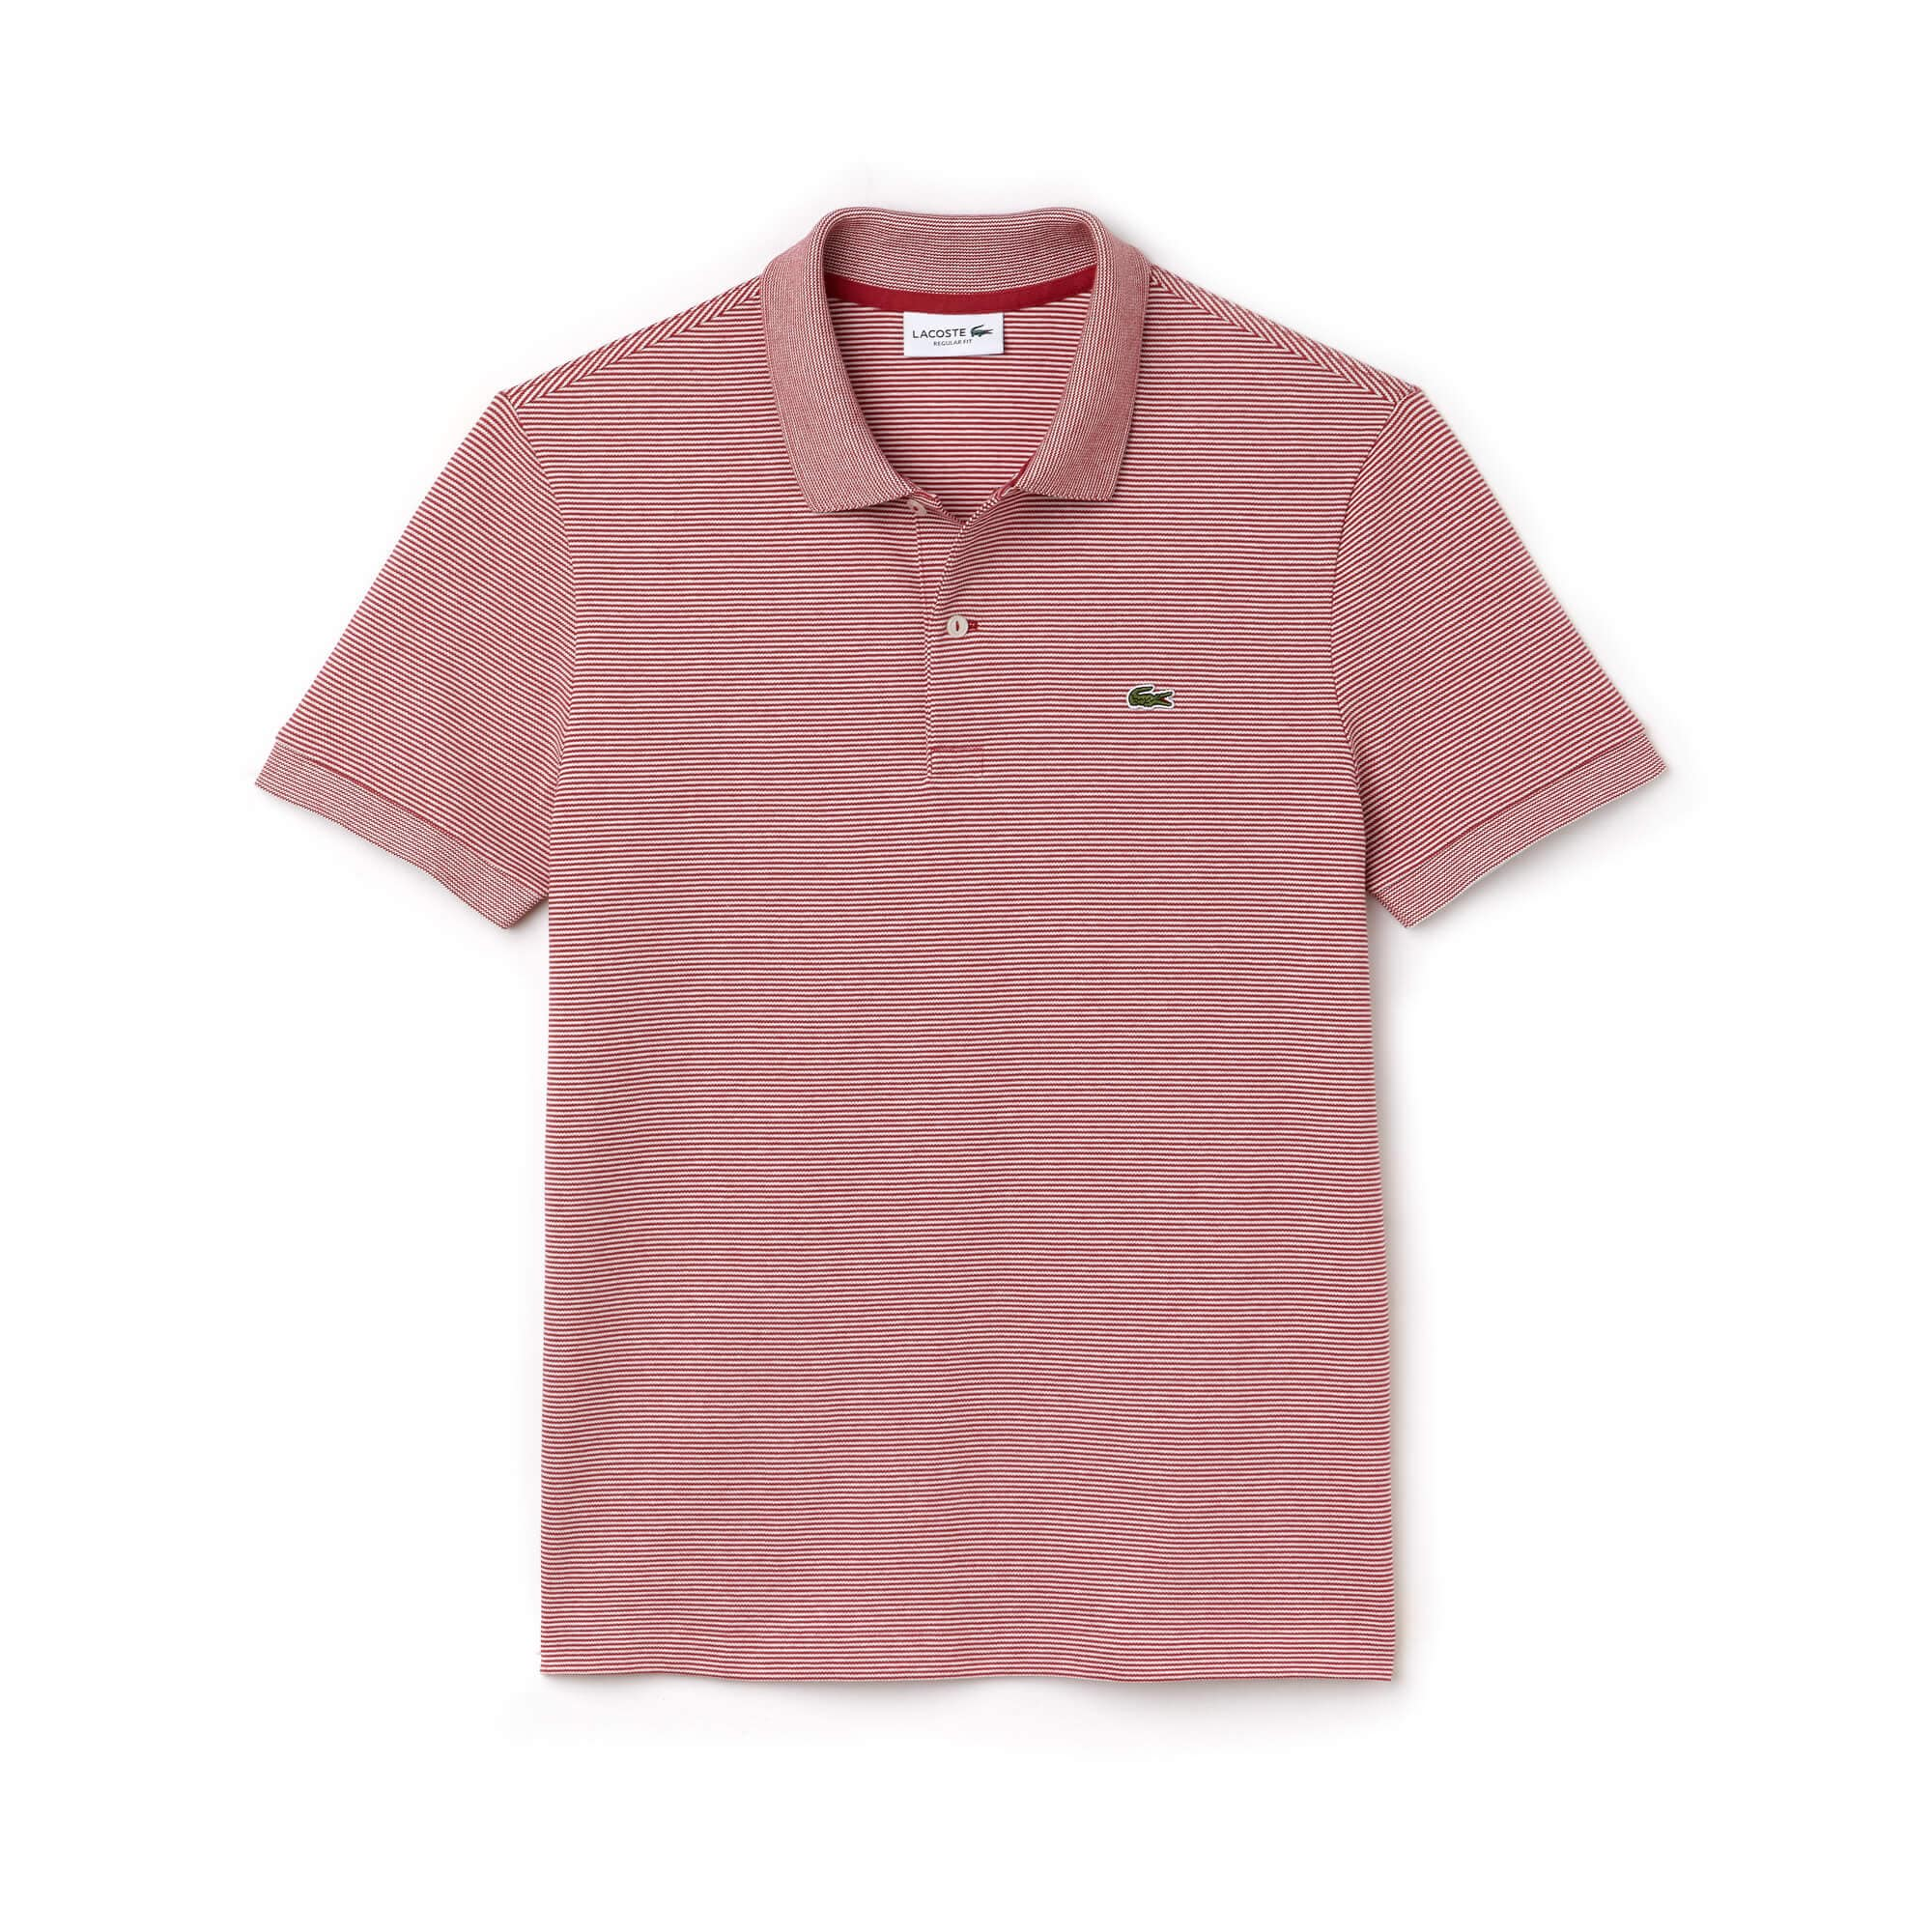 Men's Lacoste Regular Fit Striped Mini Piqué Polo